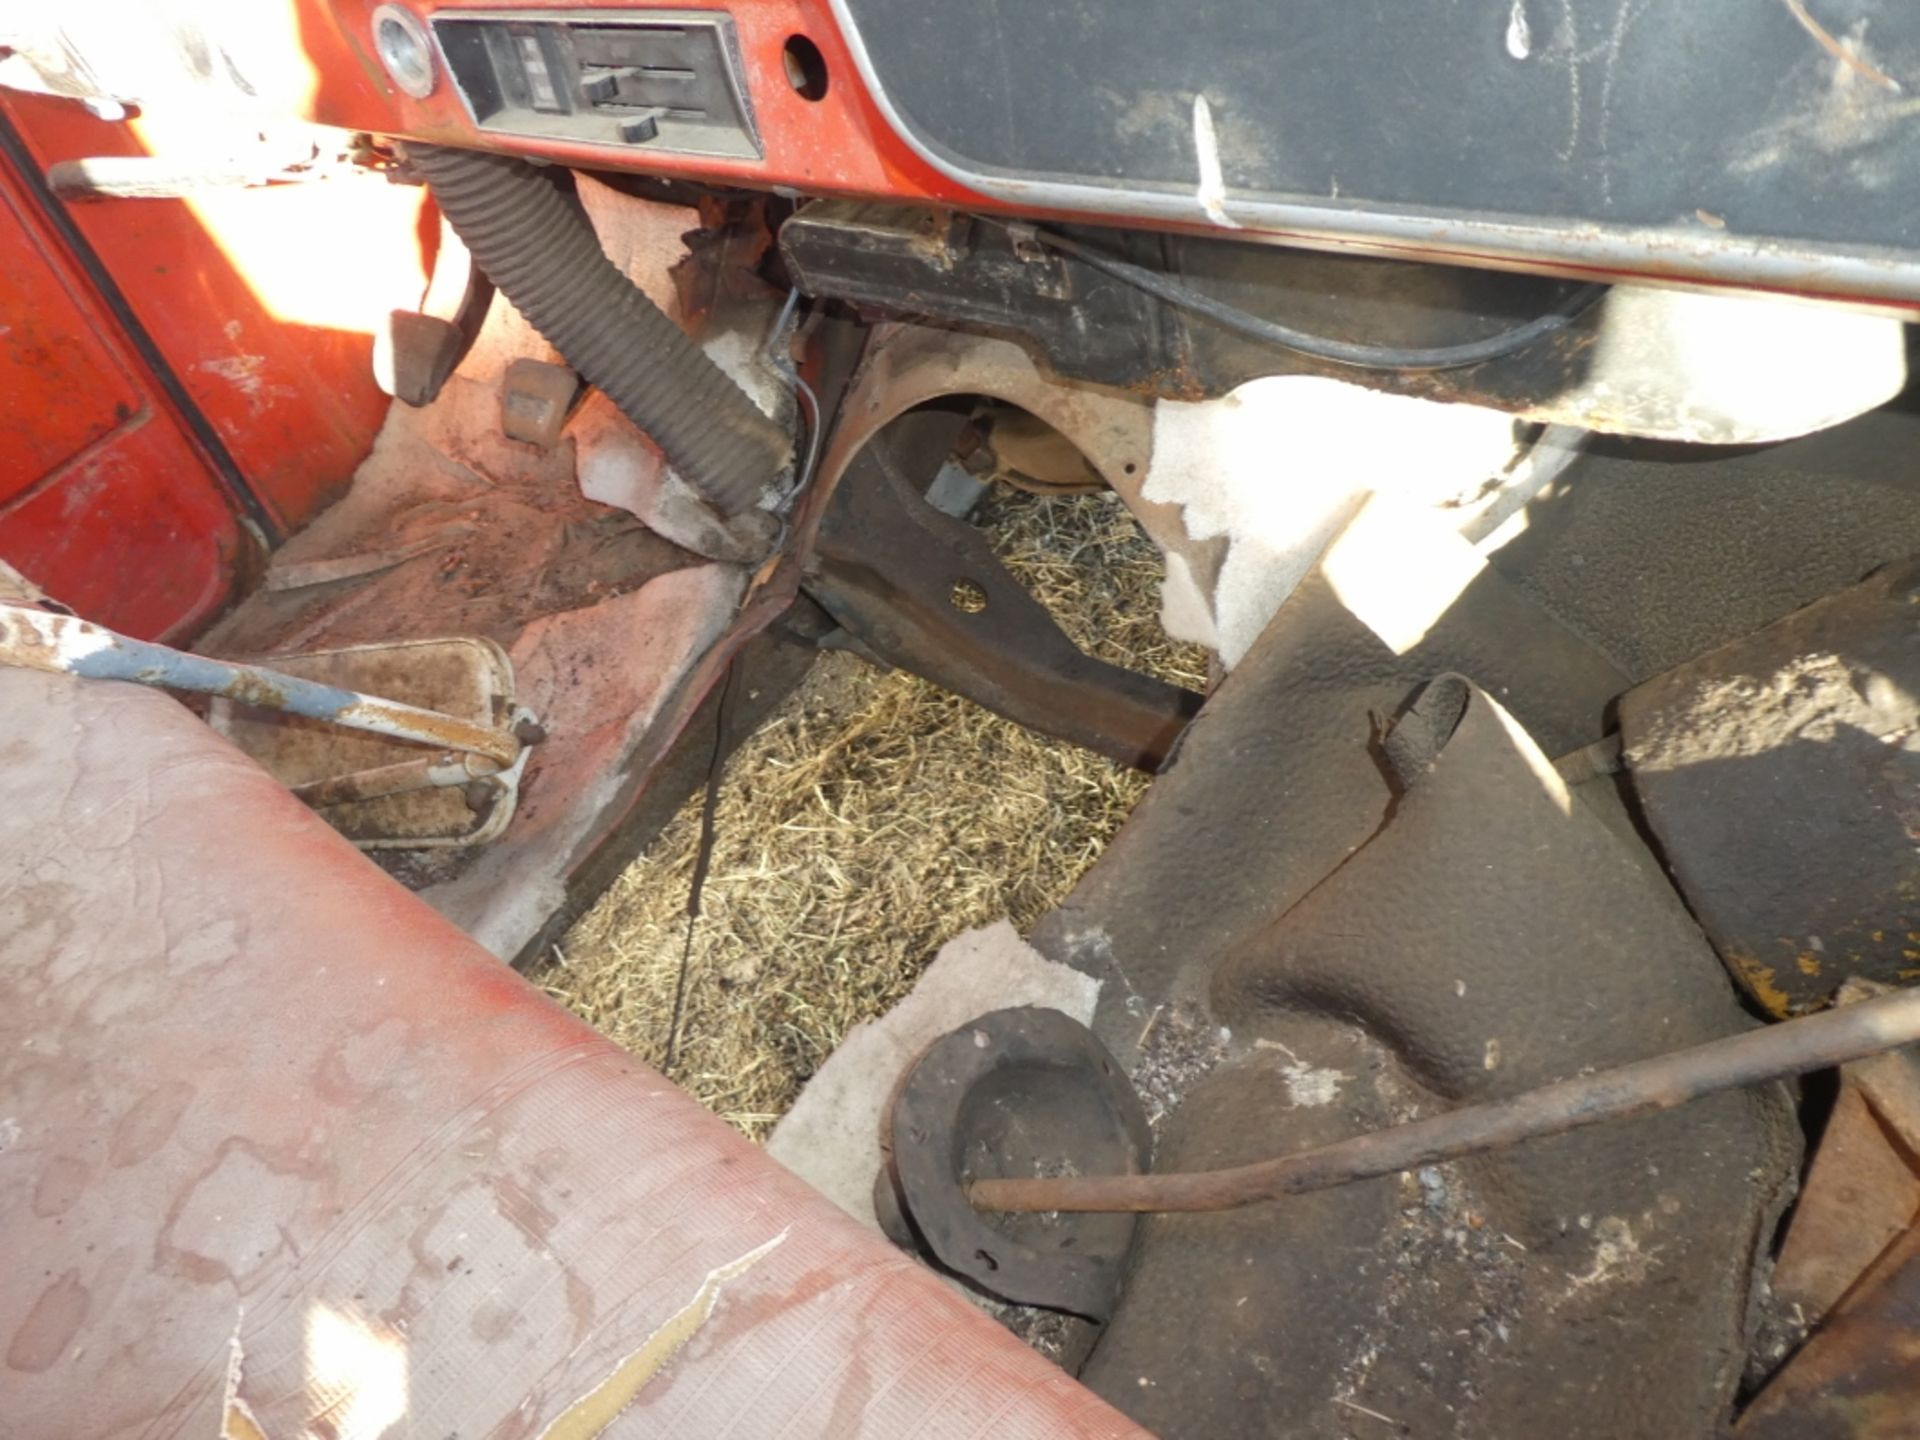 1970'S CHEV 30 CAB & CHASSIS - REG CAB, DUALS, NO ENGINE OR TRANSMISSION S/N CE3371125498 - Image 9 of 9